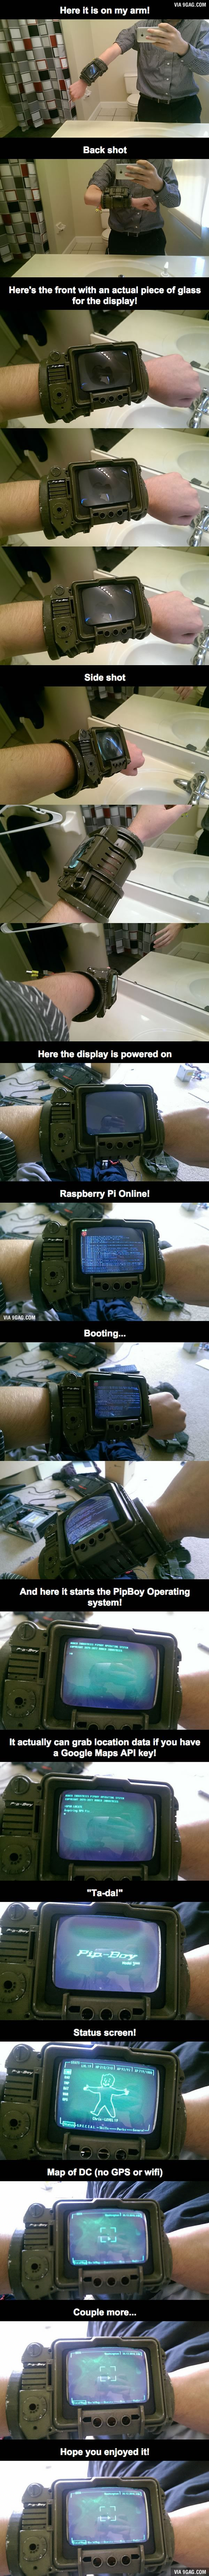 Homemade PipBoy 3000A with RaspberryPi.